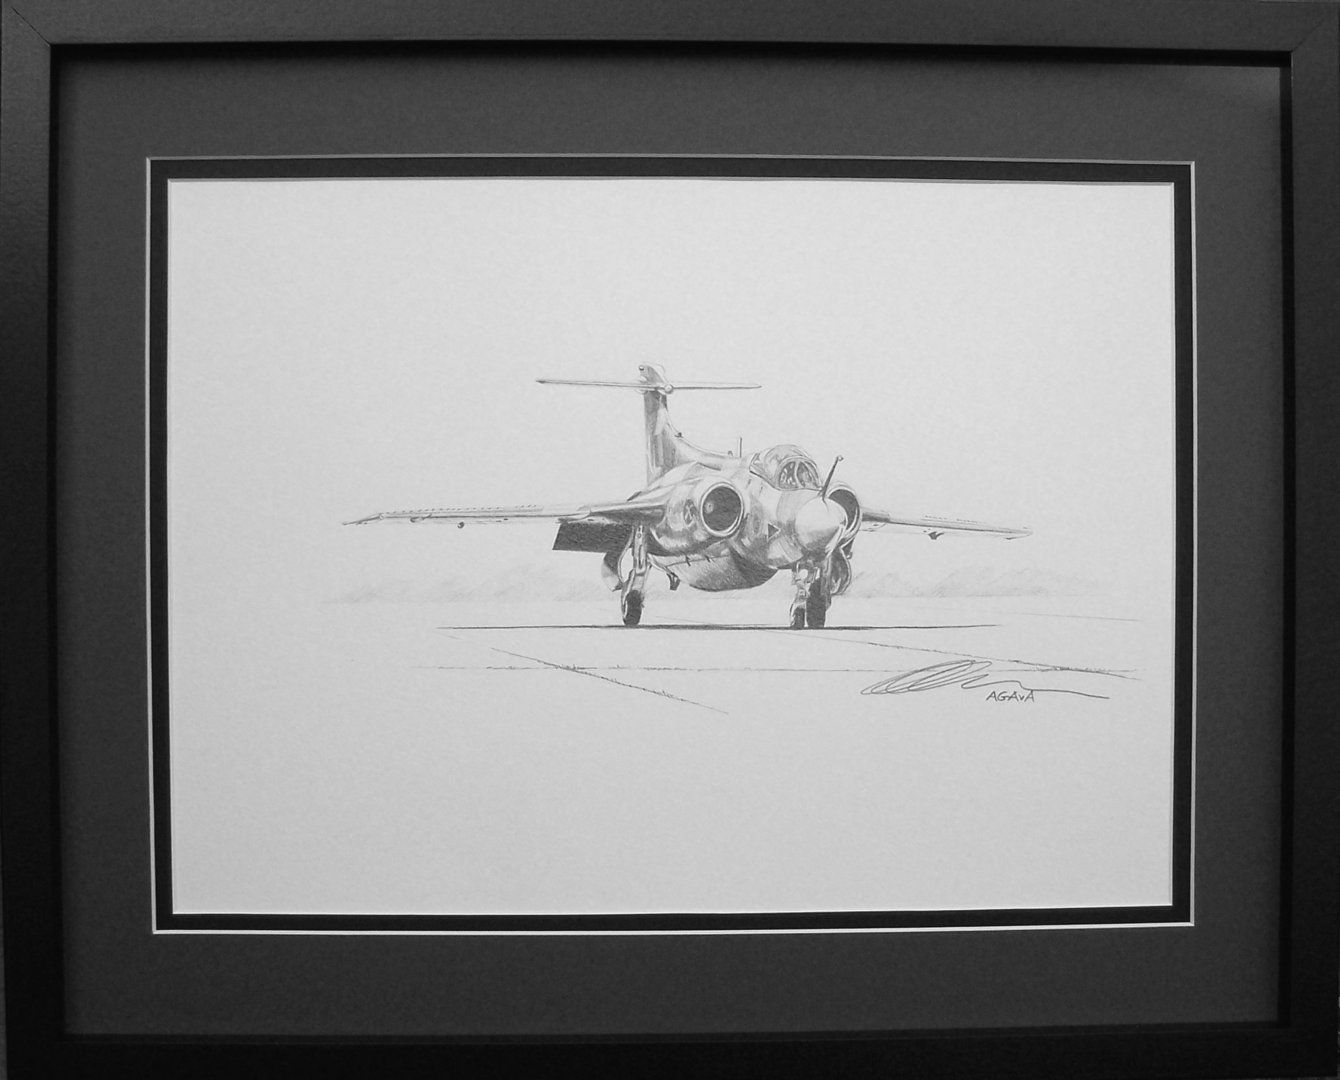 Original pencil drawing cold war jets bucaneer